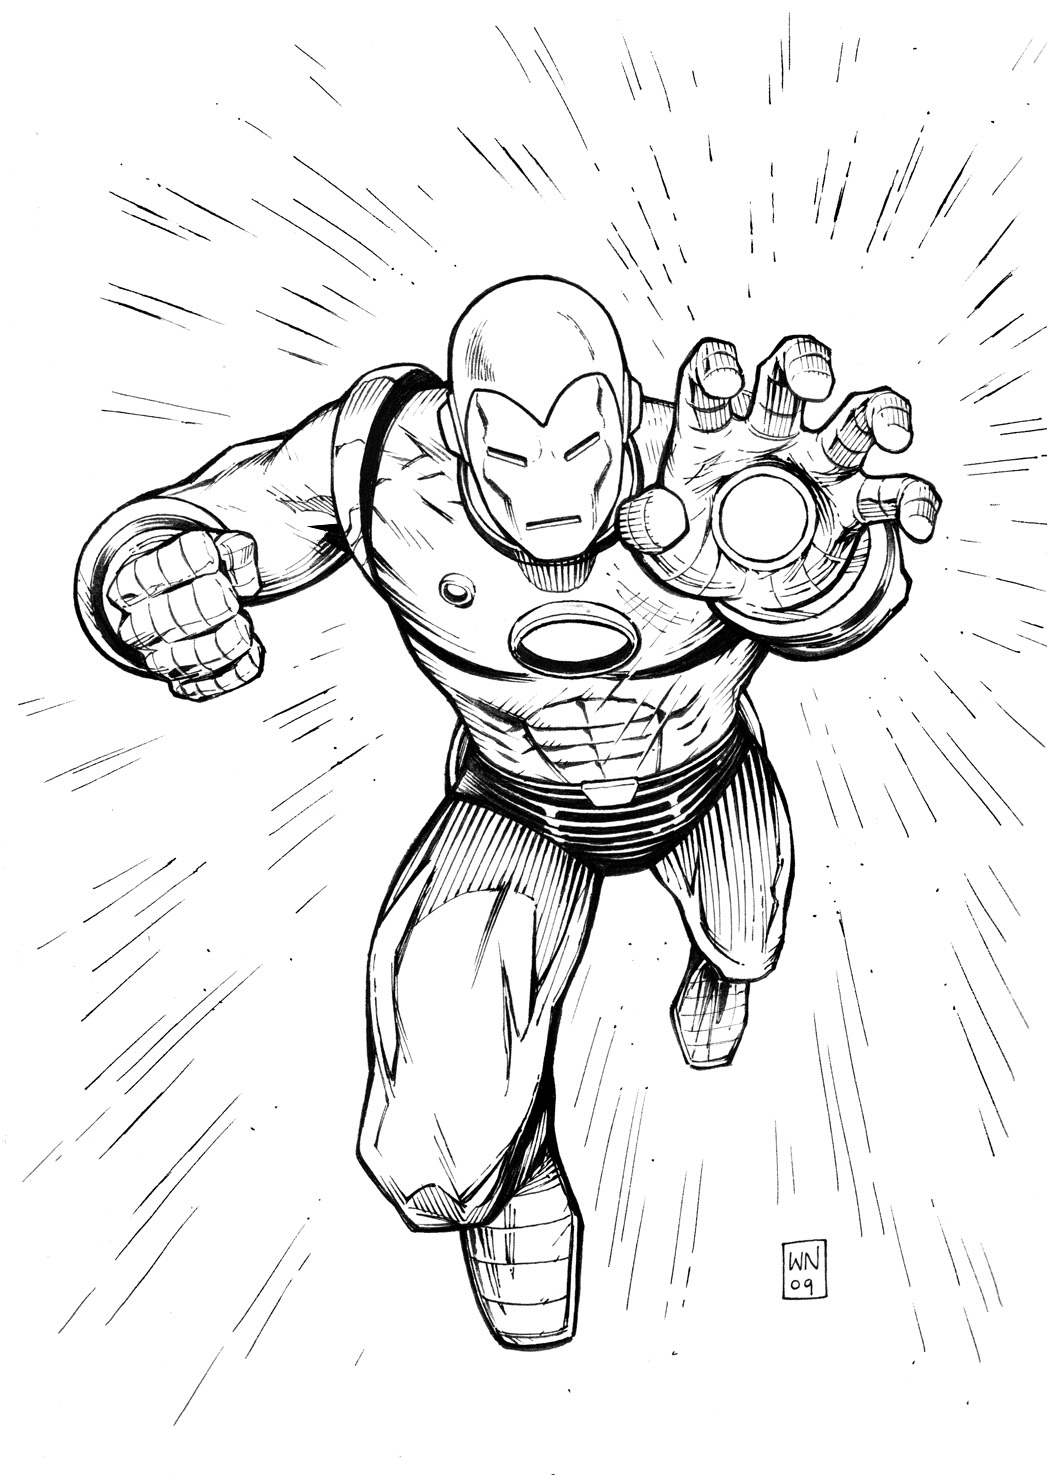 ironman printable coloring pages free printable iron man coloring pages for kids cool2bkids ironman pages printable coloring